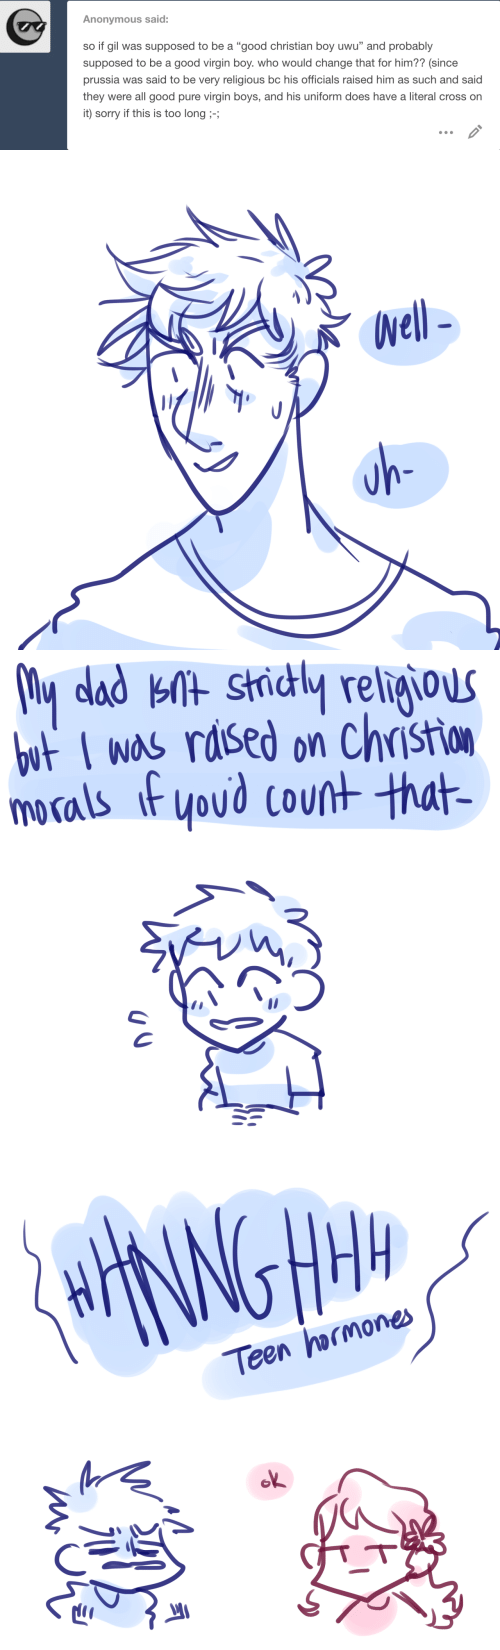 "literal: Anonymous said:  so if gil was supposed to be a ""good christian boy uwu"" and probably  supposed to be a good virgin boy. who would change that for him?? (since  prussia was said to be very religious bc his officials raised him as such and said  they were all good pure virgin boys, and his uniform does have a literal cross on  it) sorry if this is too long ;-;   Well-  uh-   My dad knt strictly religious  but I was raised on Christion  morals if you'd count that-   HHANNGHM  Teen hormones  ok  miono"